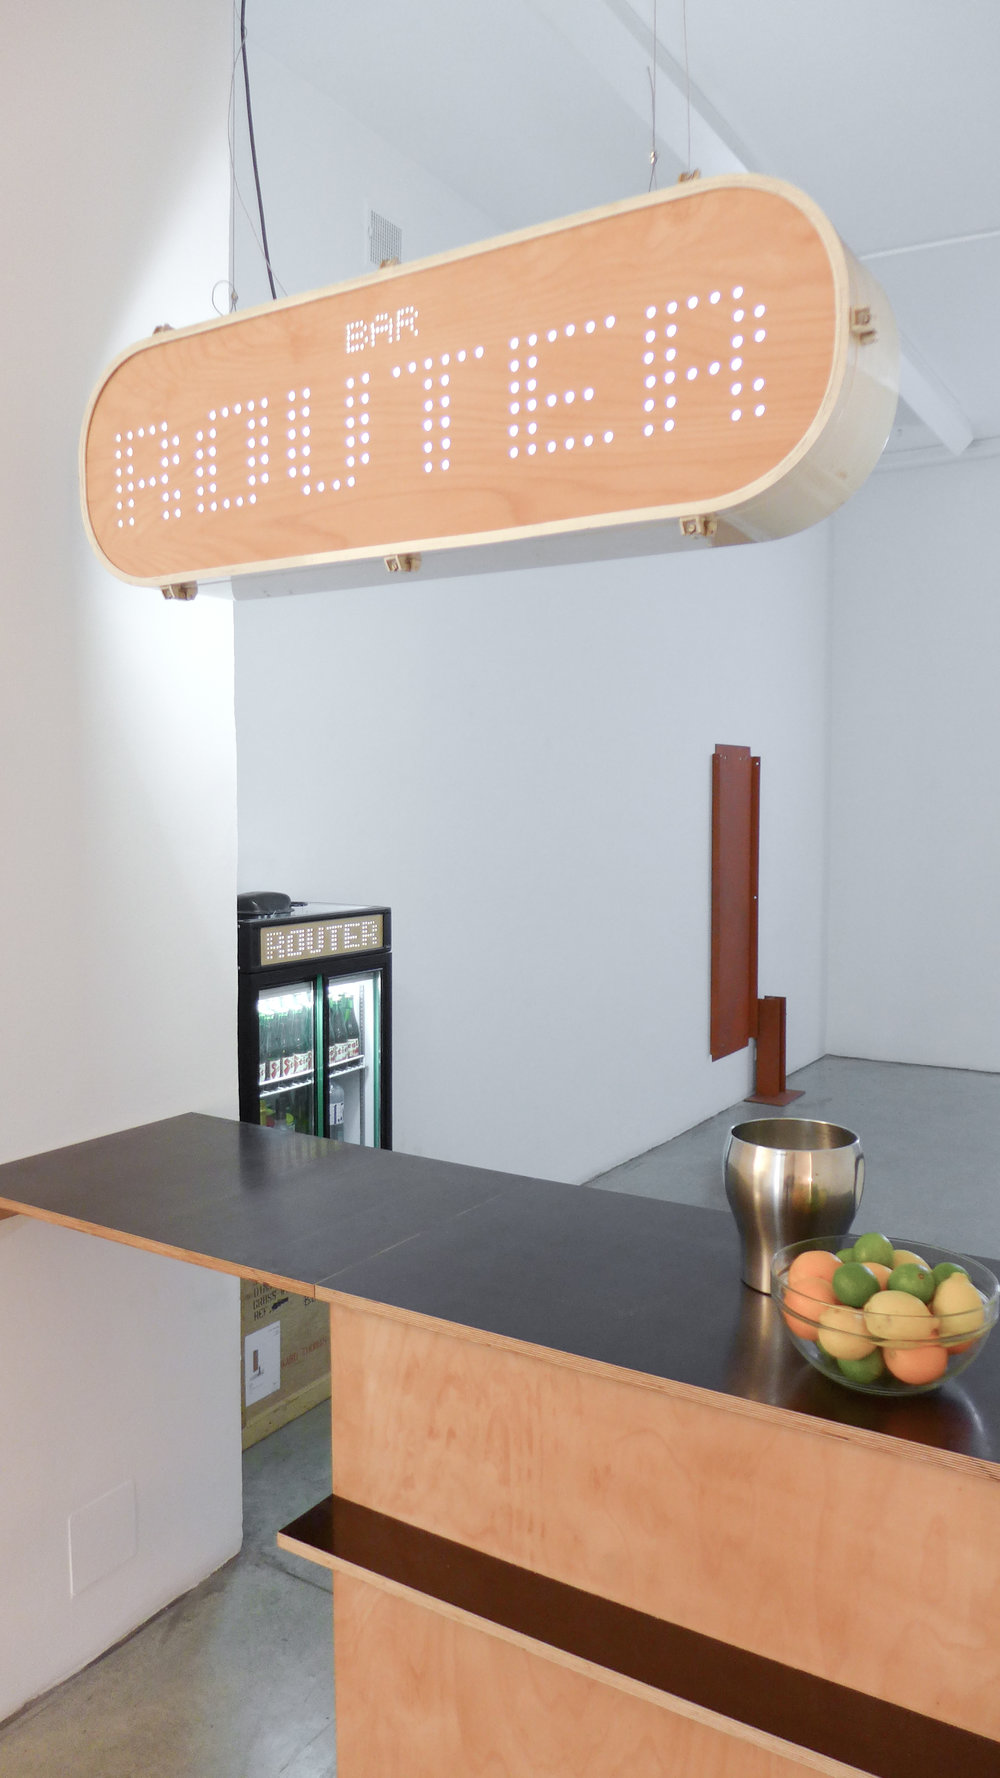 Exhibition View, Relational Changes, curated by_Cointemporary, 2015, Courtesy: Galerie Christine König